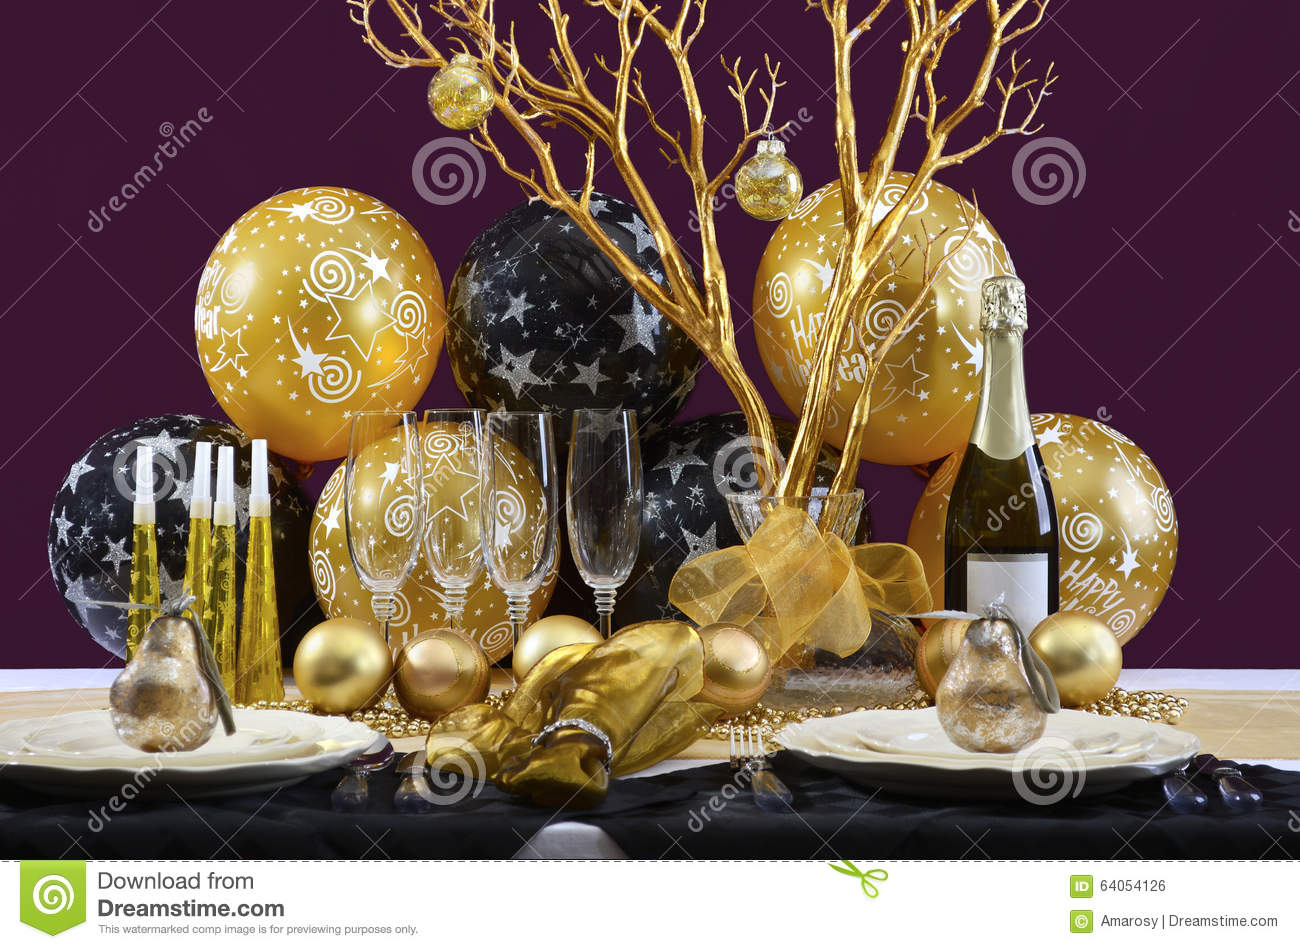 New years eve dinner table place setting royalty free